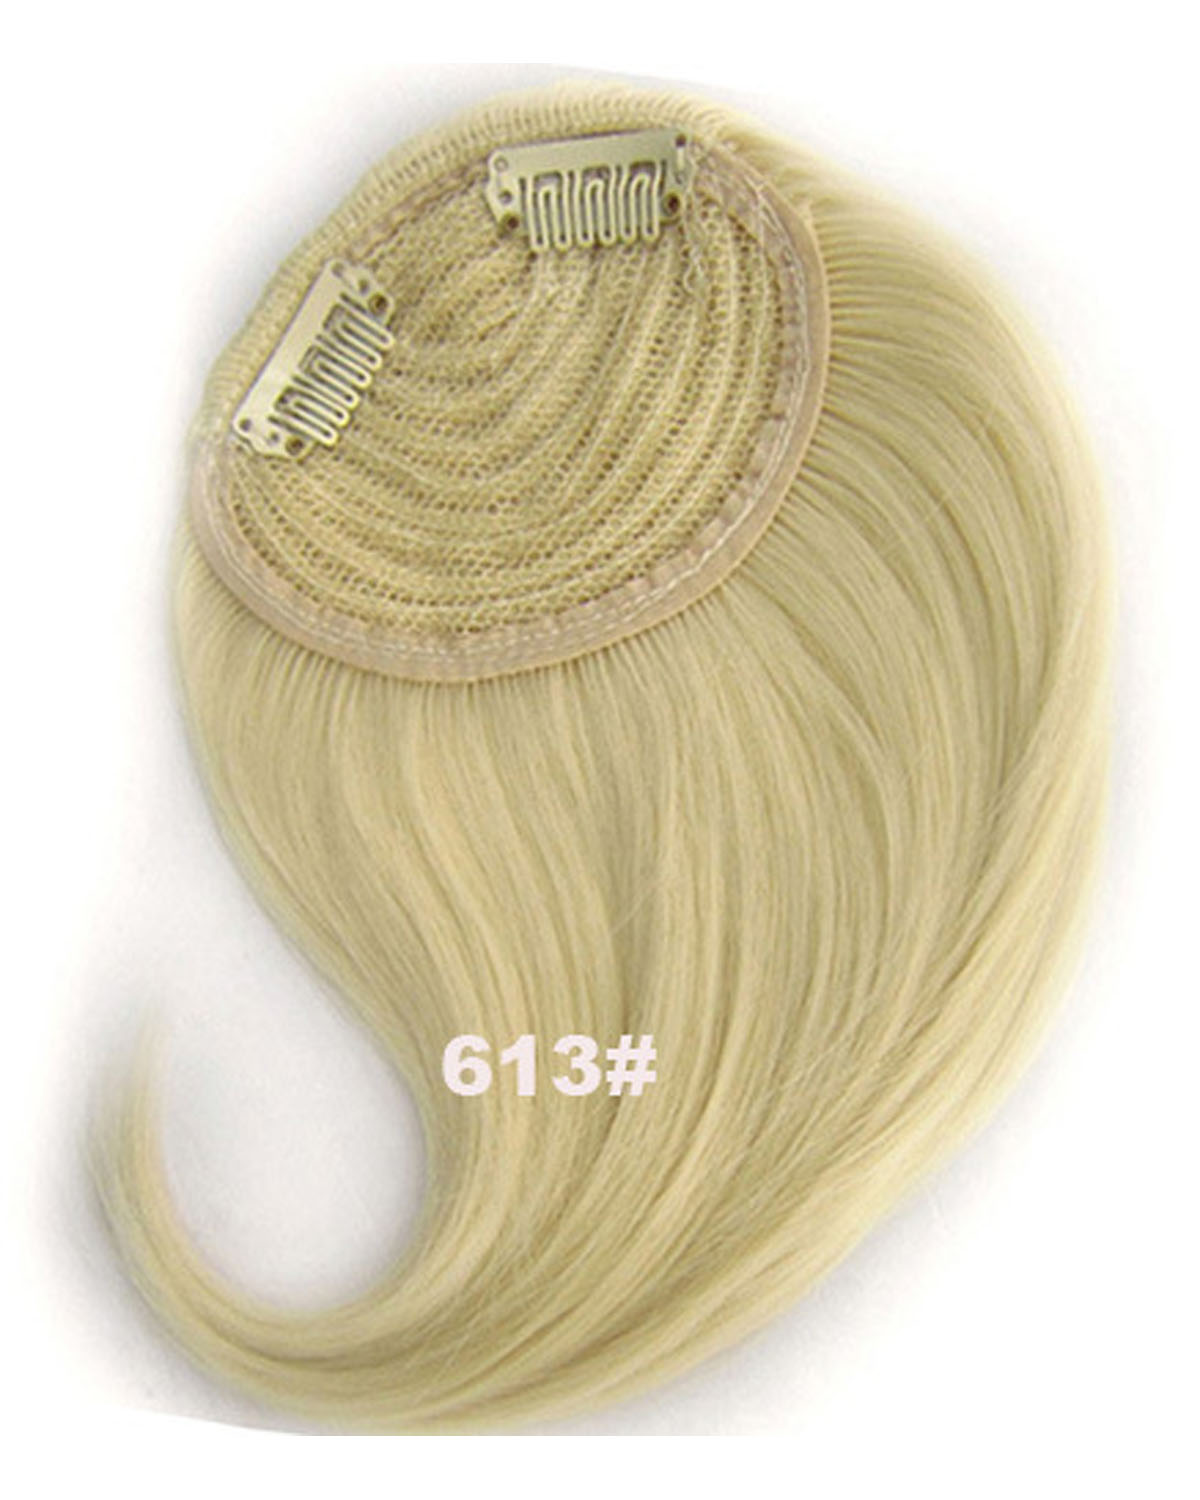 Girls Excellent Straight Short Bangs Clip in Synthetic Hair Extension Fringe Bangs Hairpiece613#